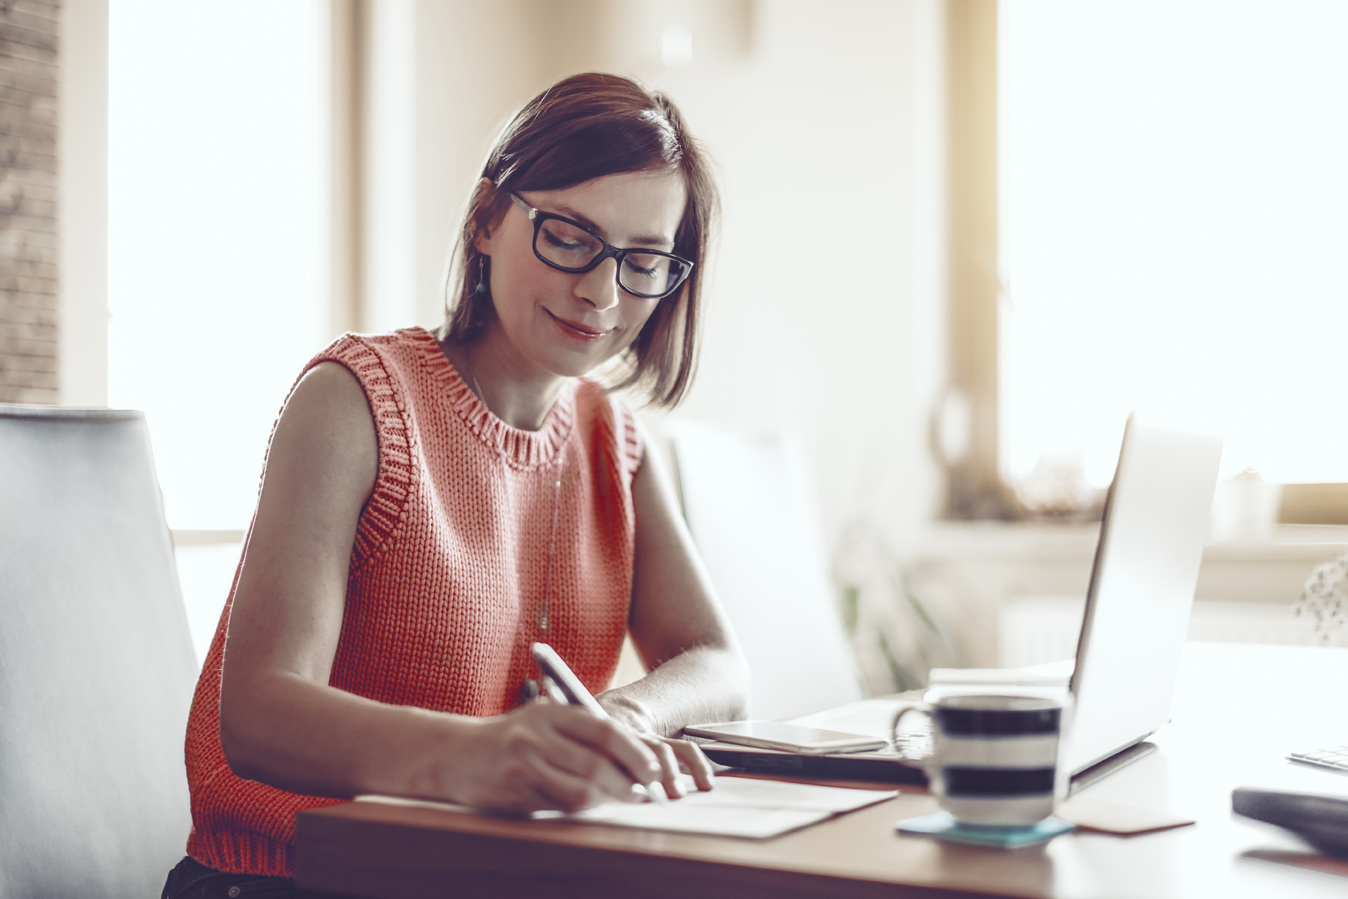 Woman, 30s, at home, businesswoman, working at home, home office, one person, small business, entrepreneur, smart phone, using phone, coffee, kitchen